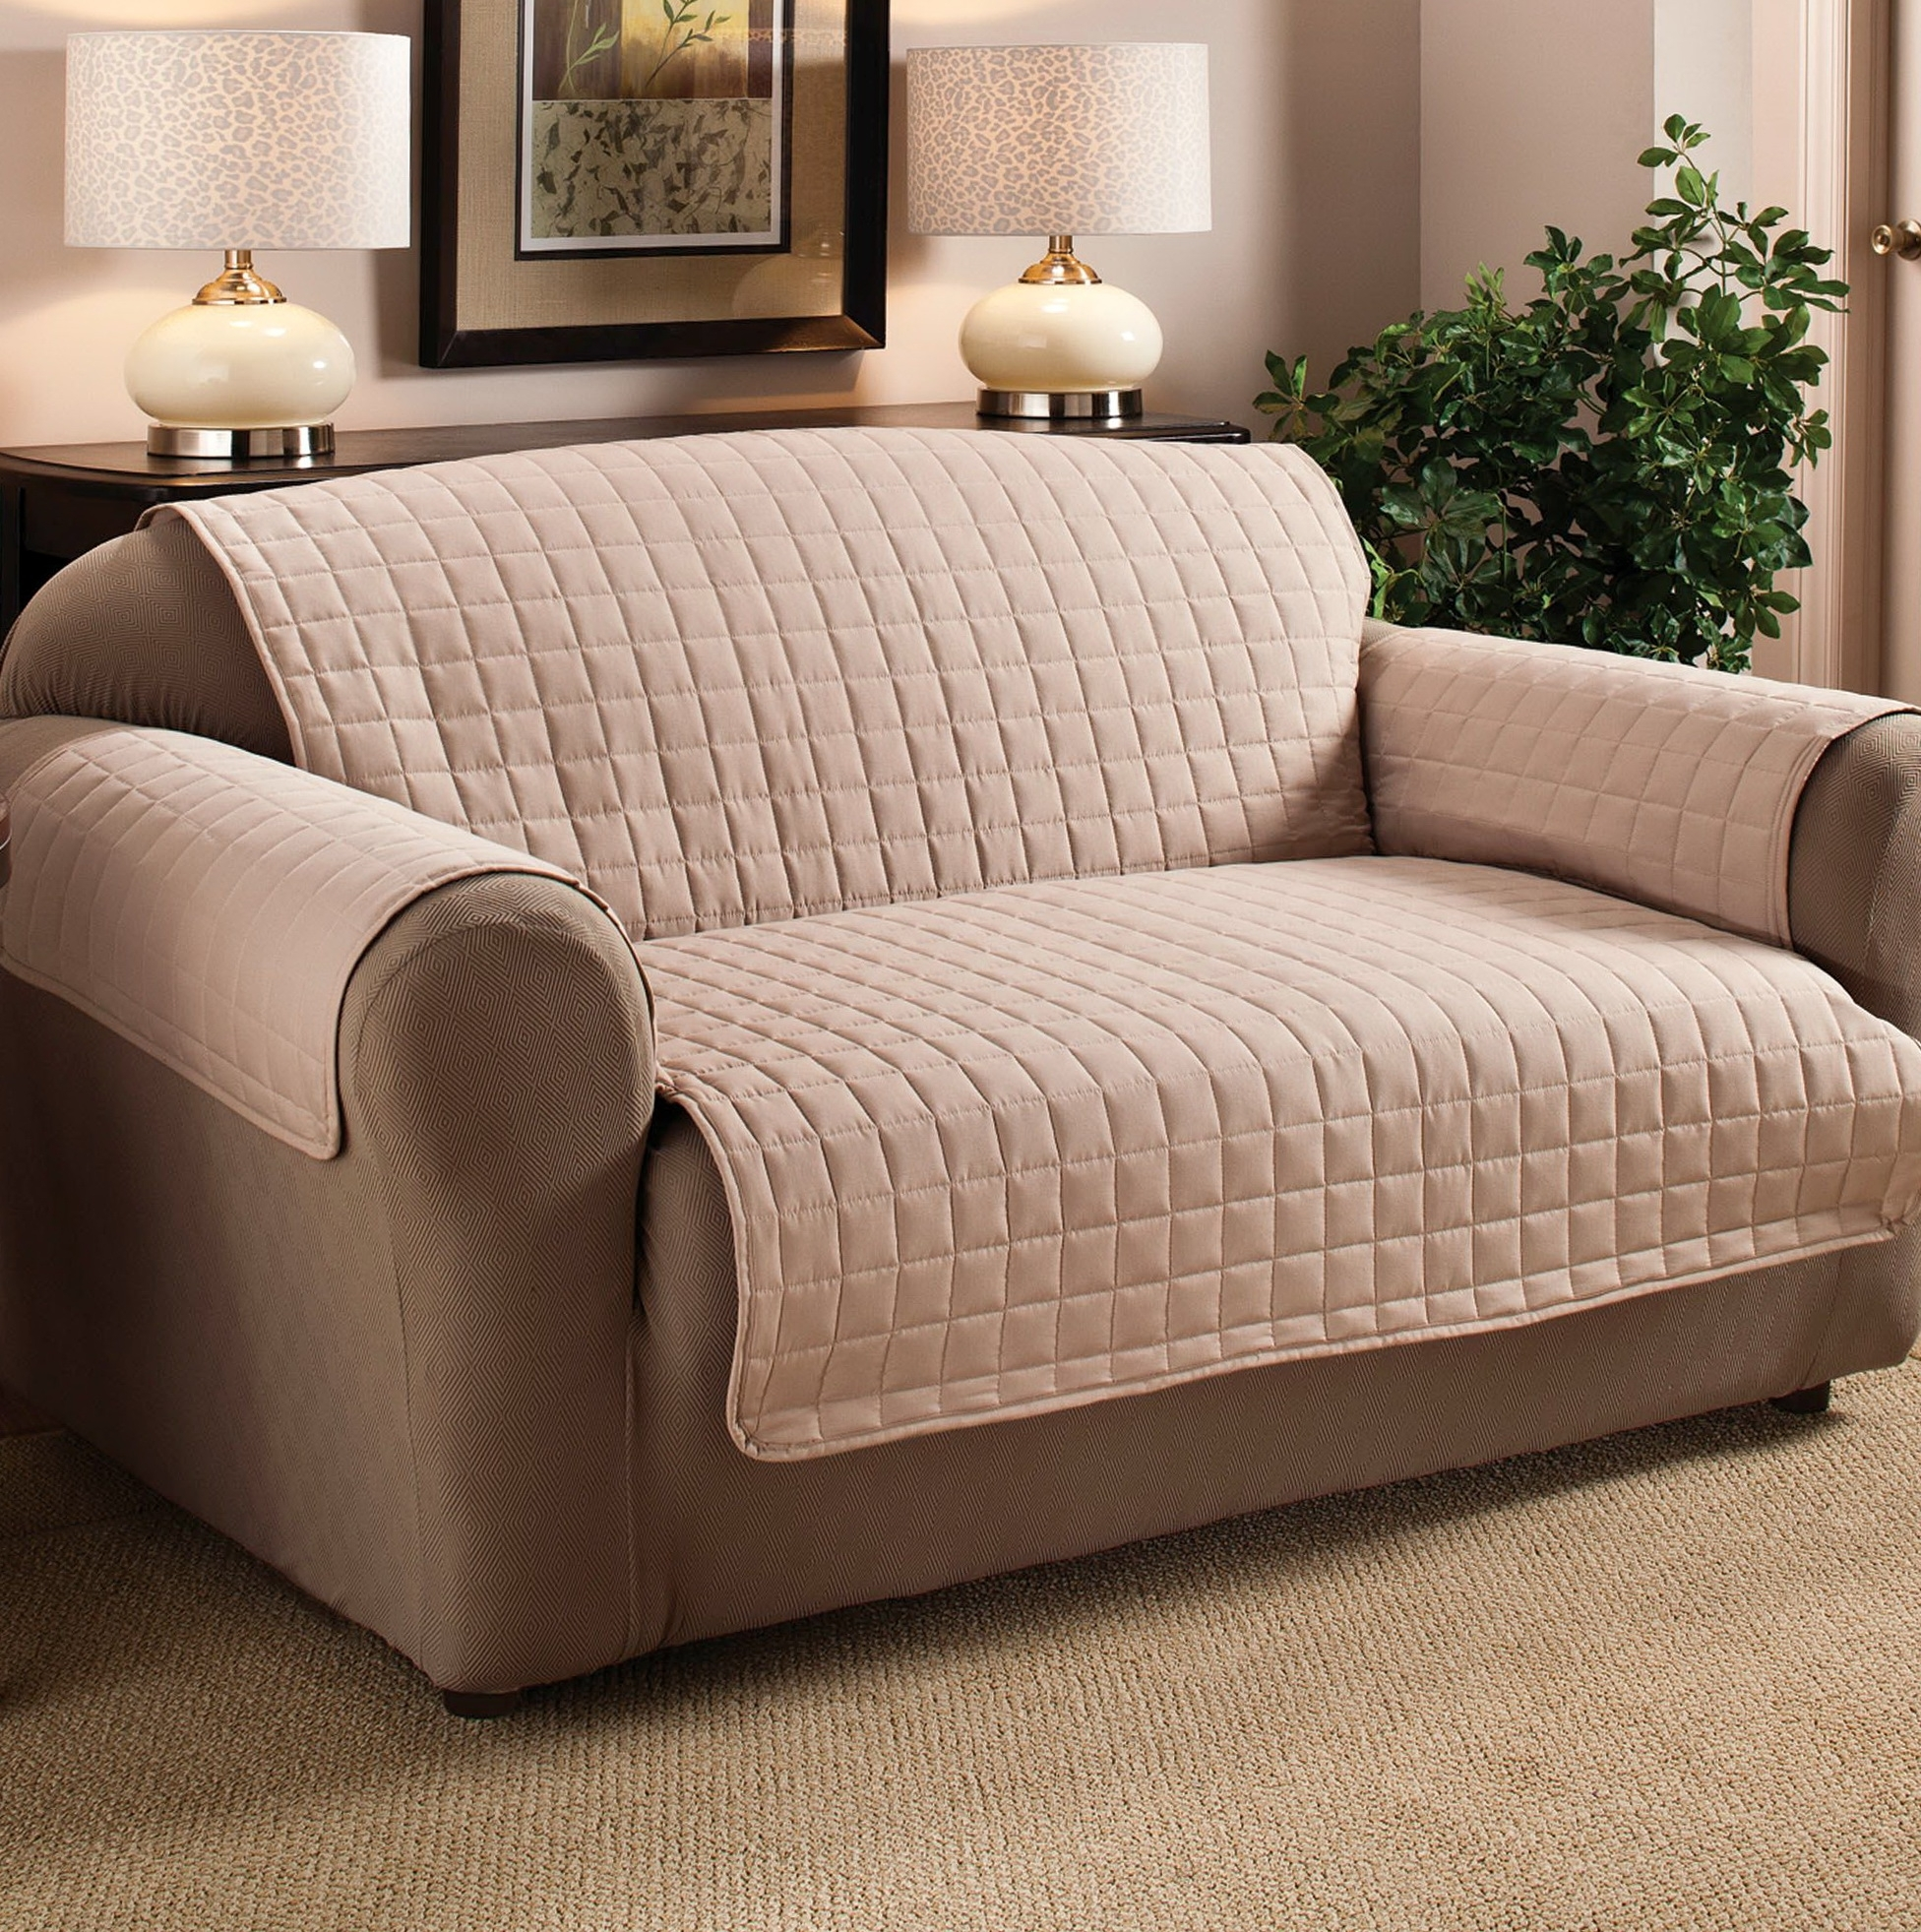 Fashionable Lovely Chaise Lounge Sofa Covers 92 Sofas And Couches Ideas With In Chaise Couch Covers (View 10 of 15)